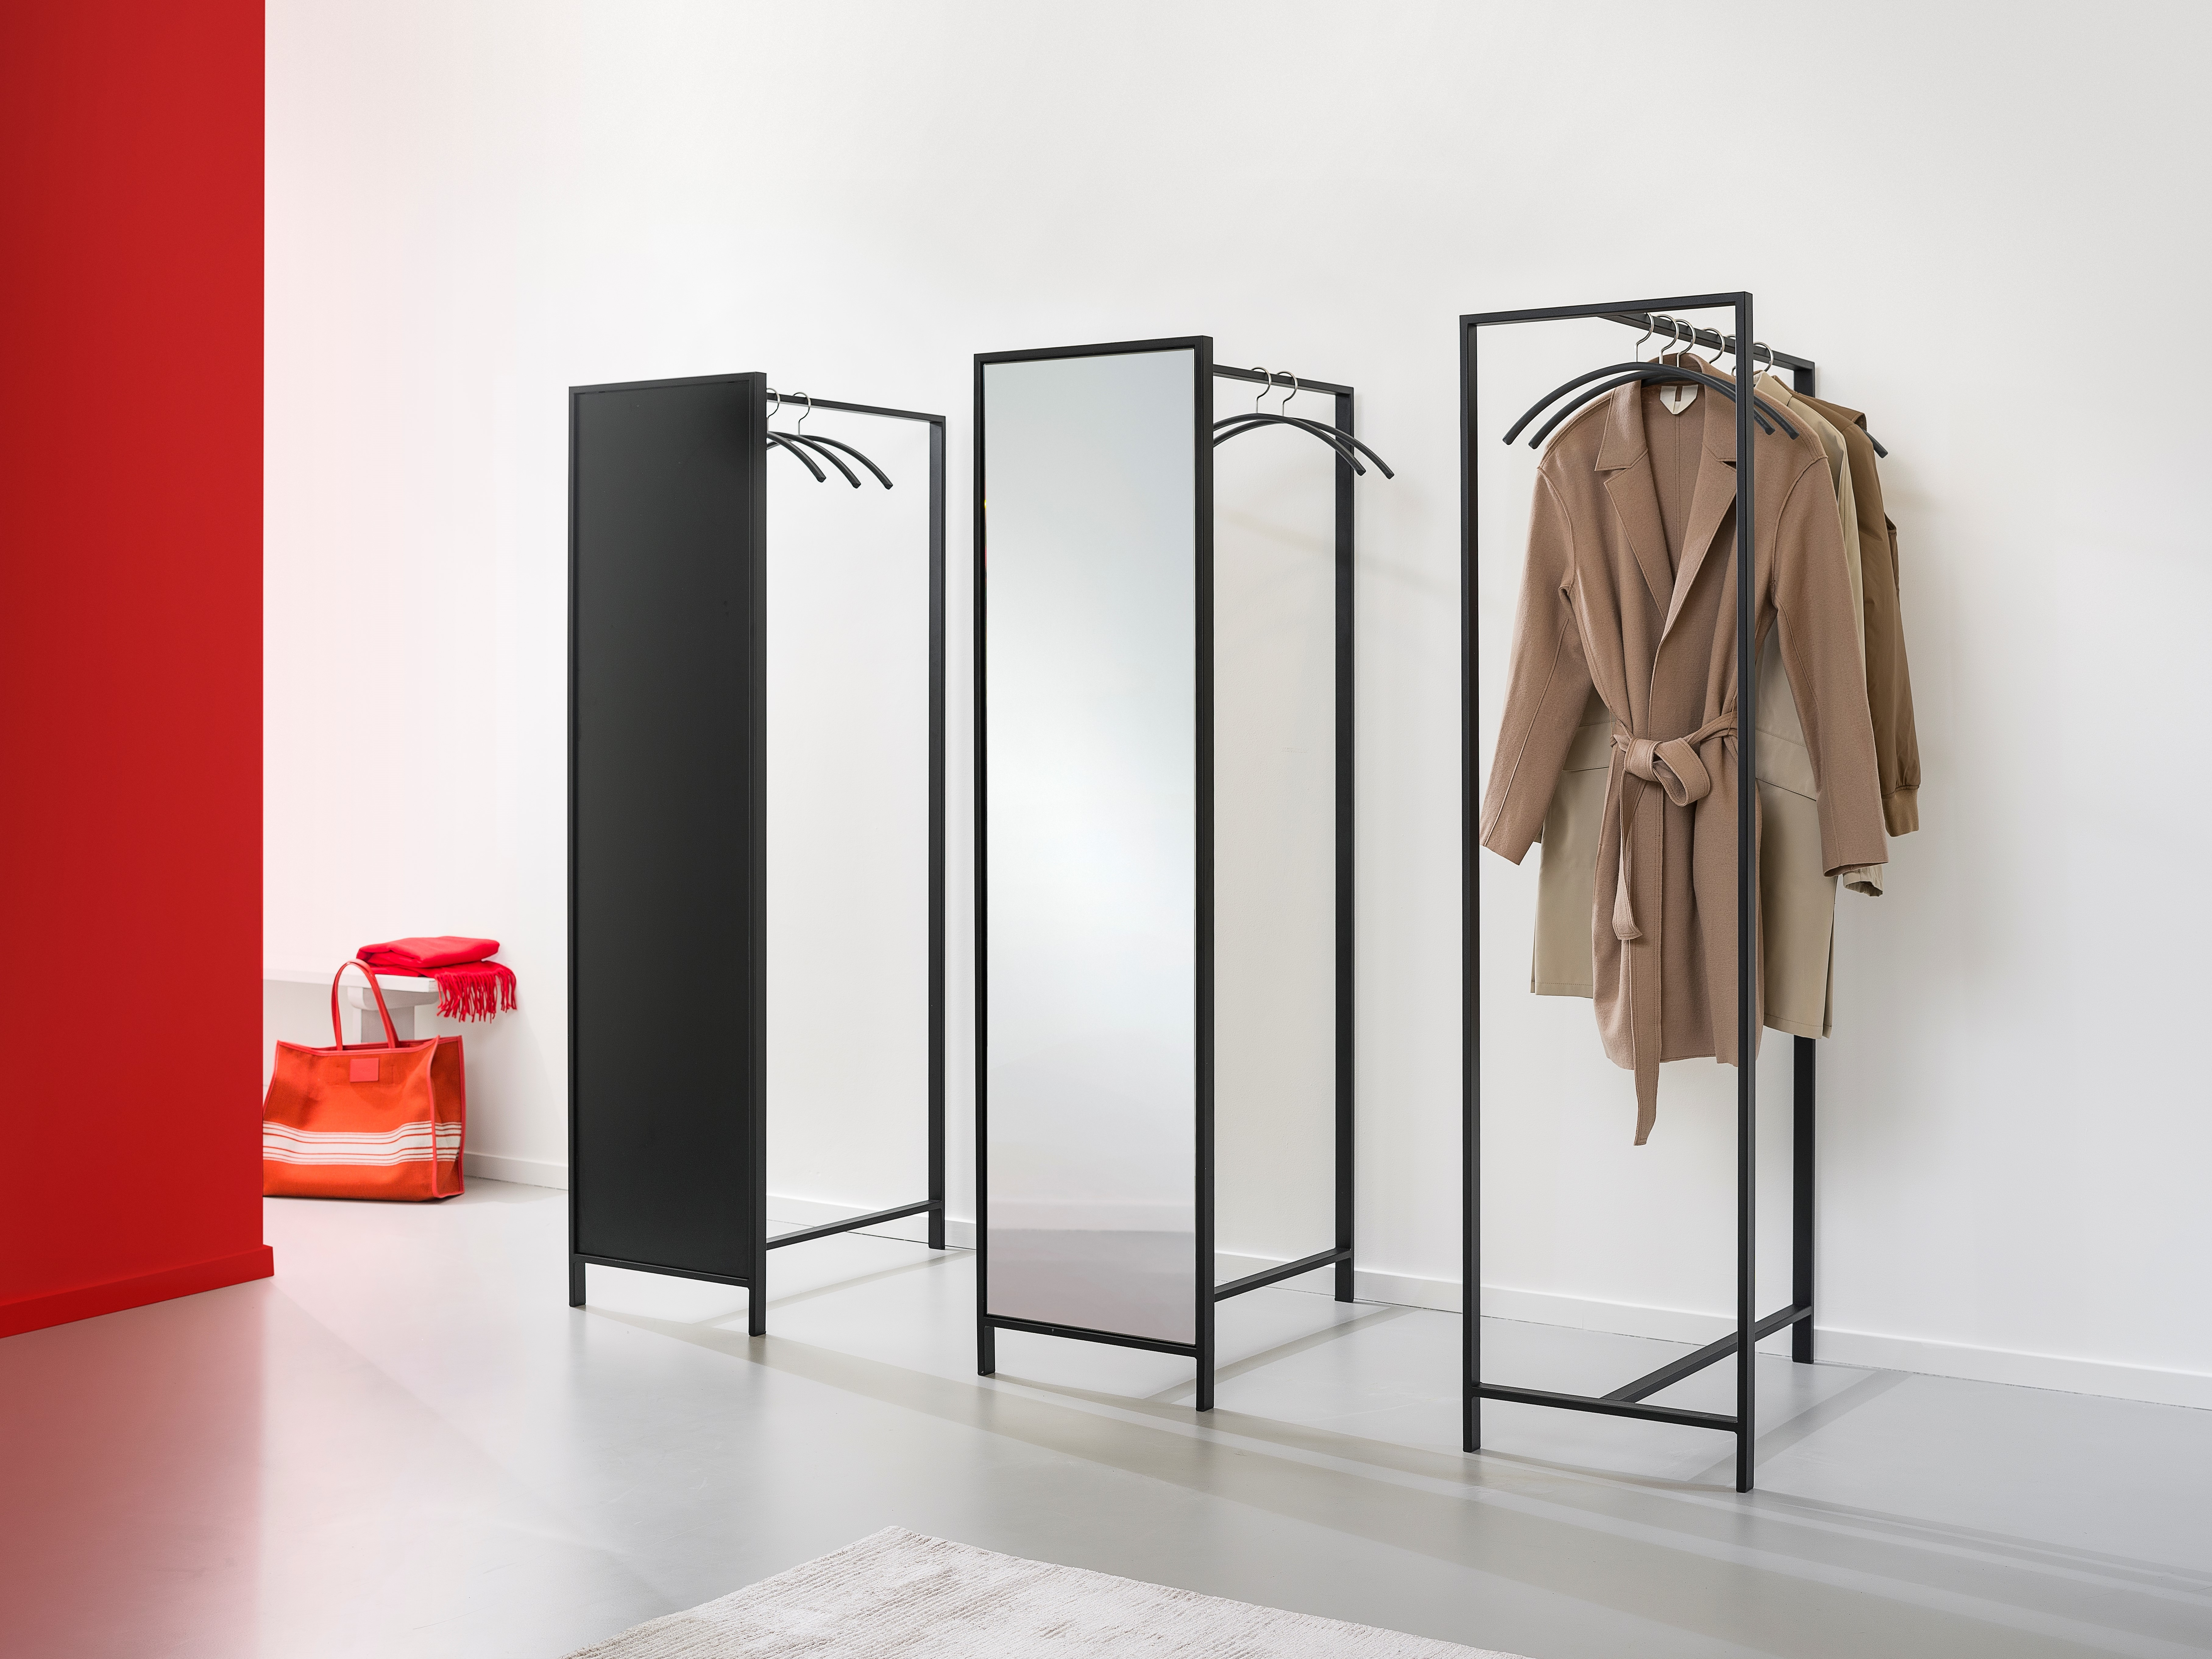 Garderobe Rekken Van Esch.The Perfect Entrance Van Esch